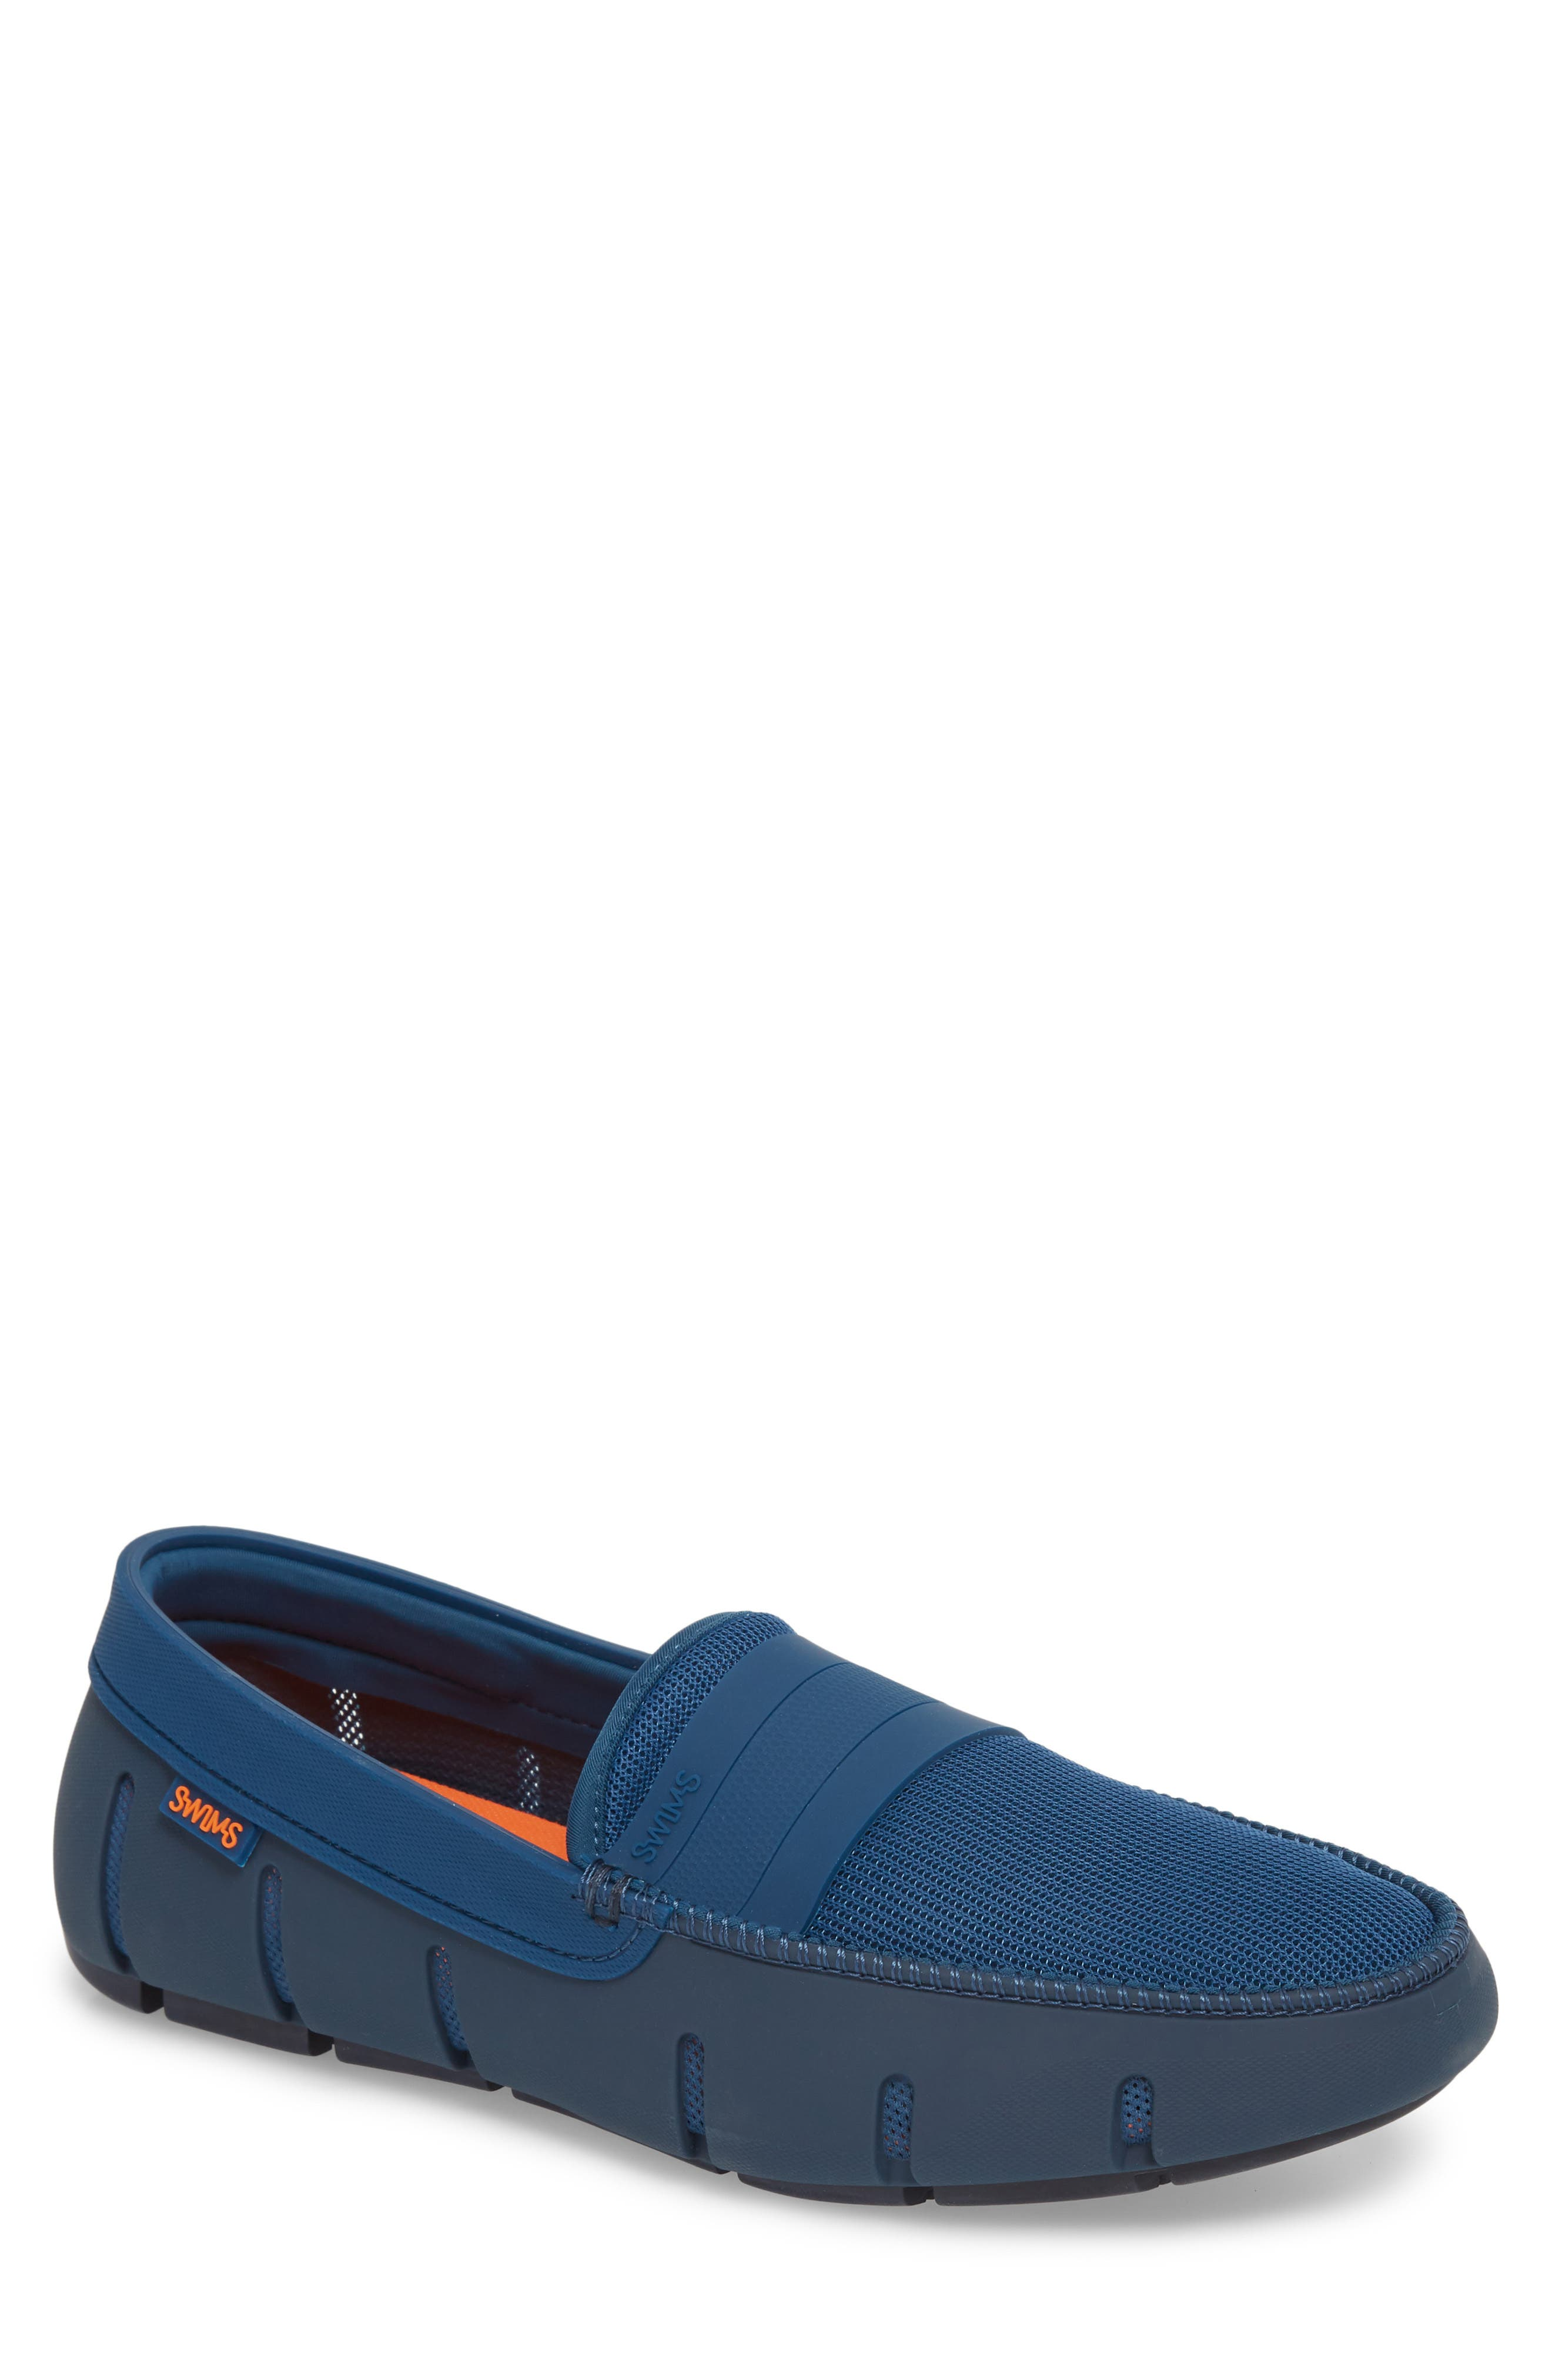 Stride Banded Loafer,                             Main thumbnail 1, color,                             POSEIDON/ NAVY FABRIC